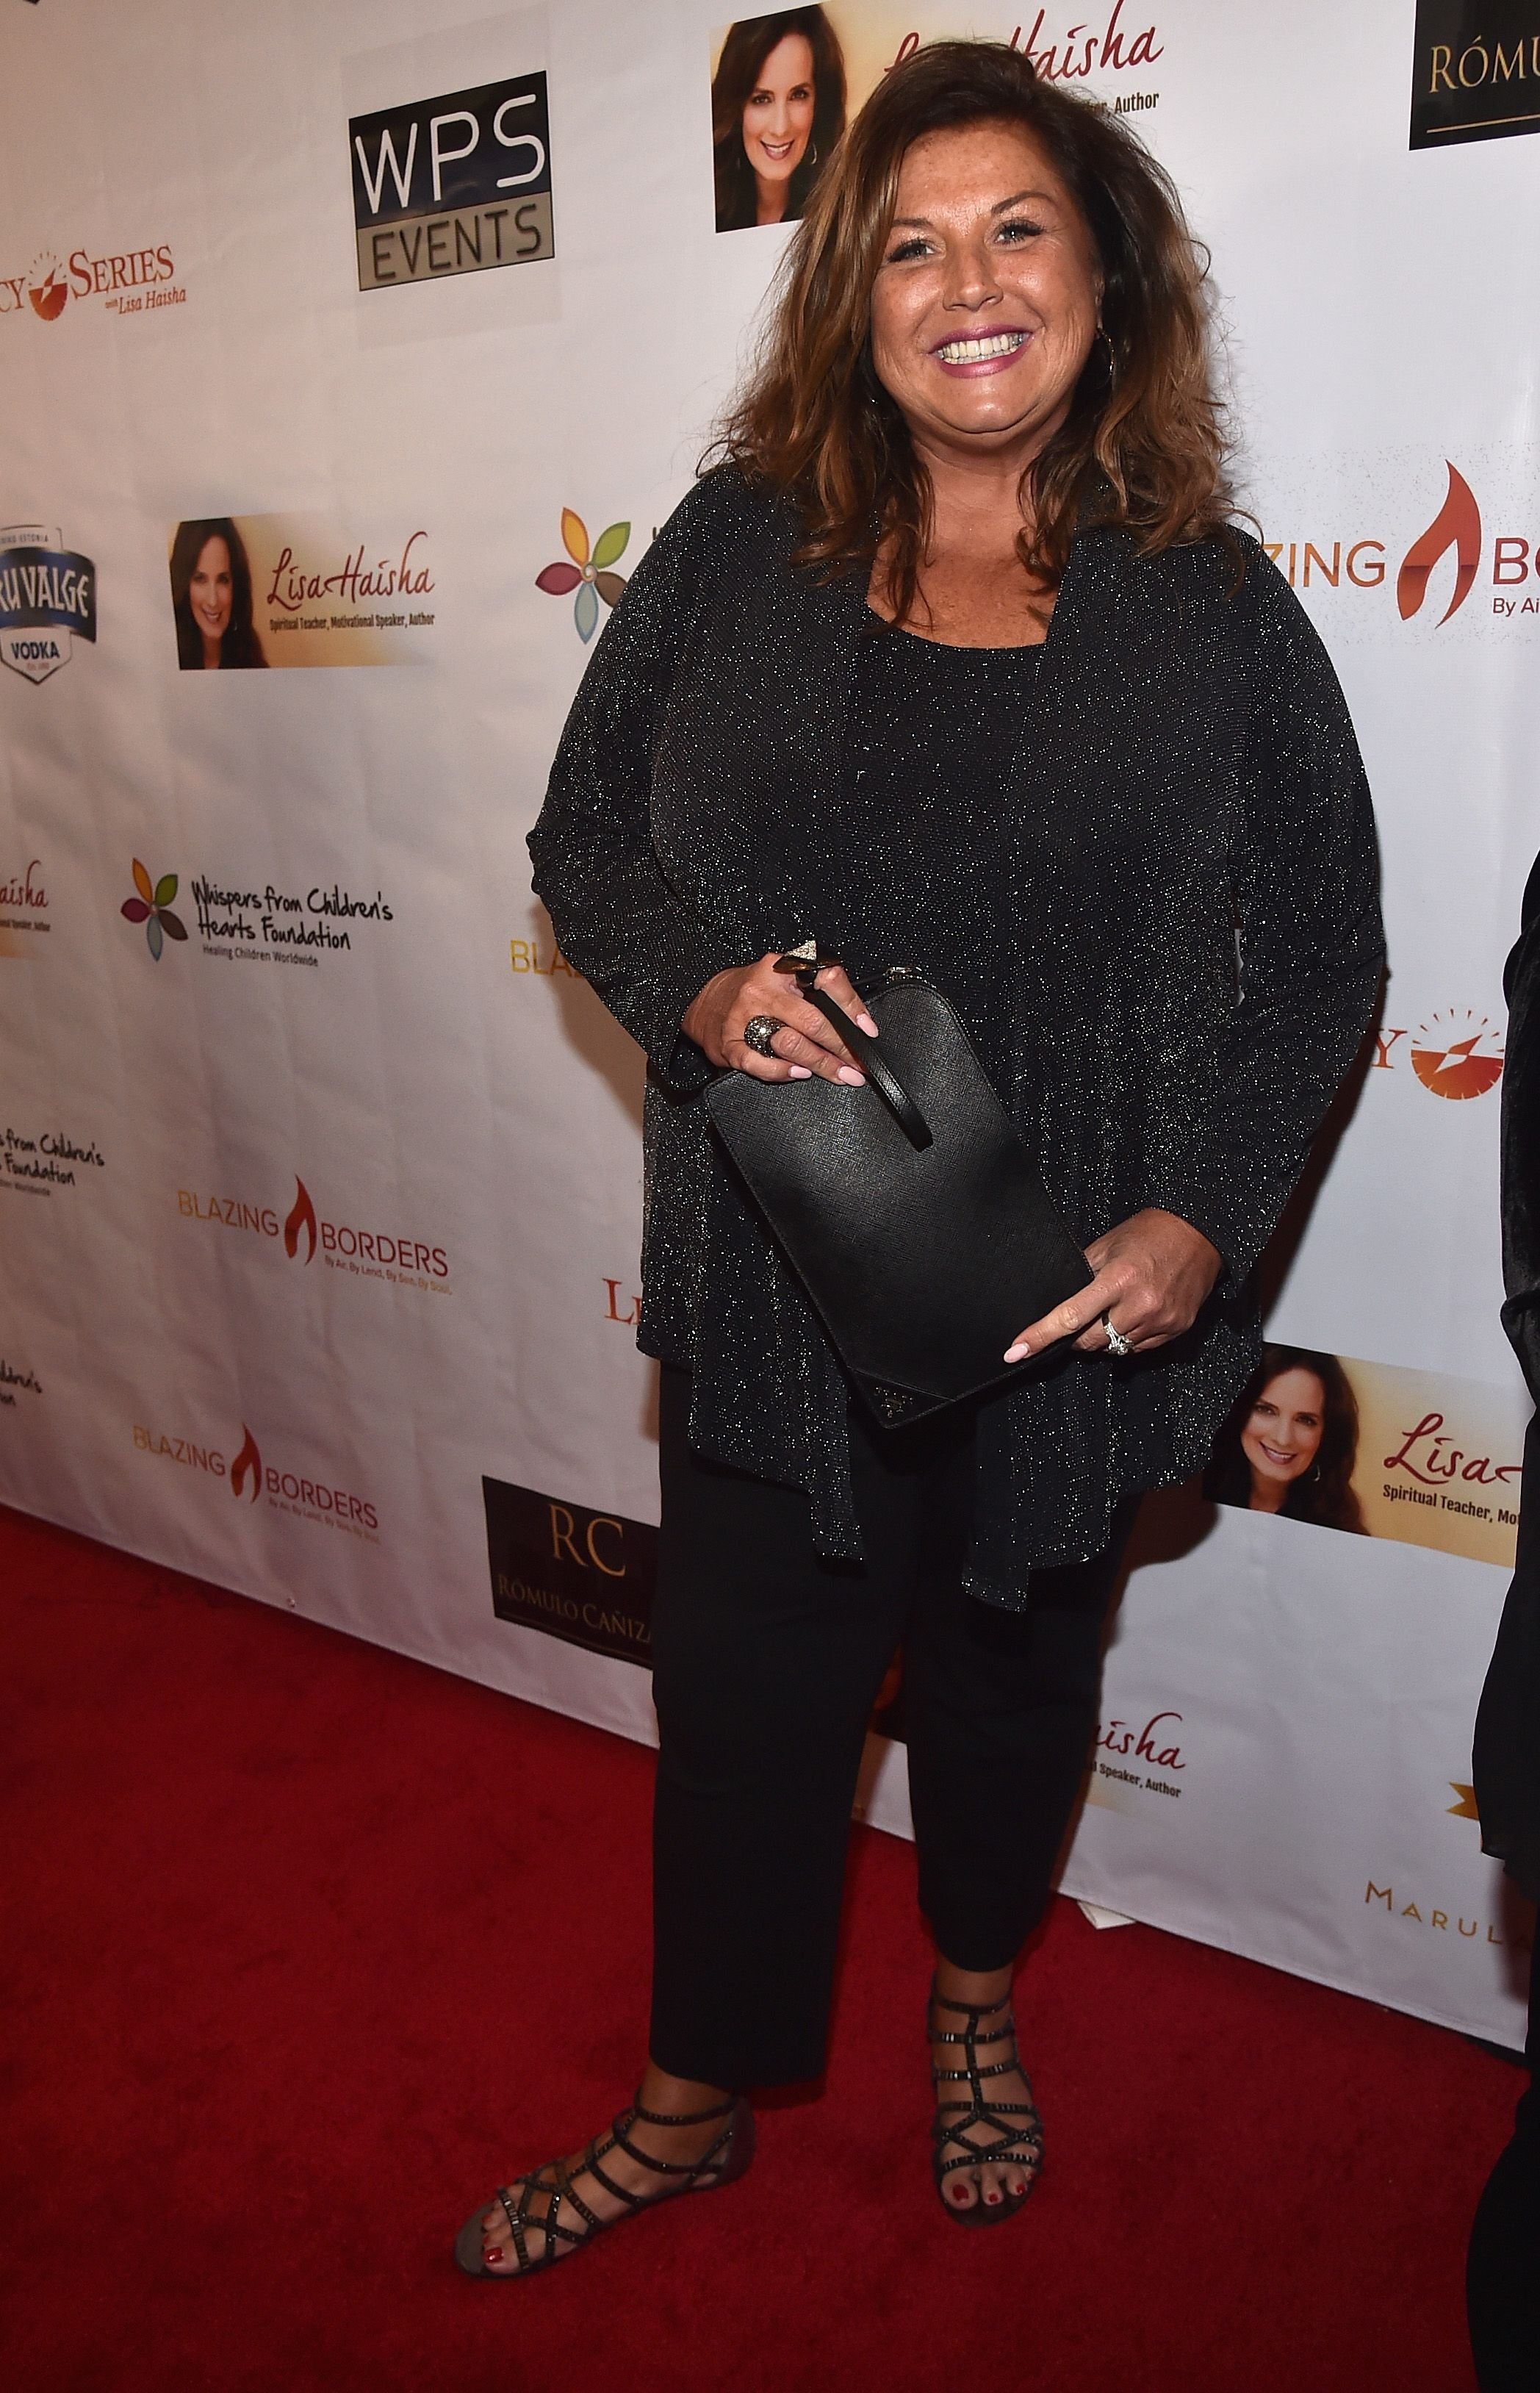 Abby Lee Miller at the 3rd Annual Whispers From Children's Hearts Foundation in 2017 in Santa Monica | Source: Getty Images